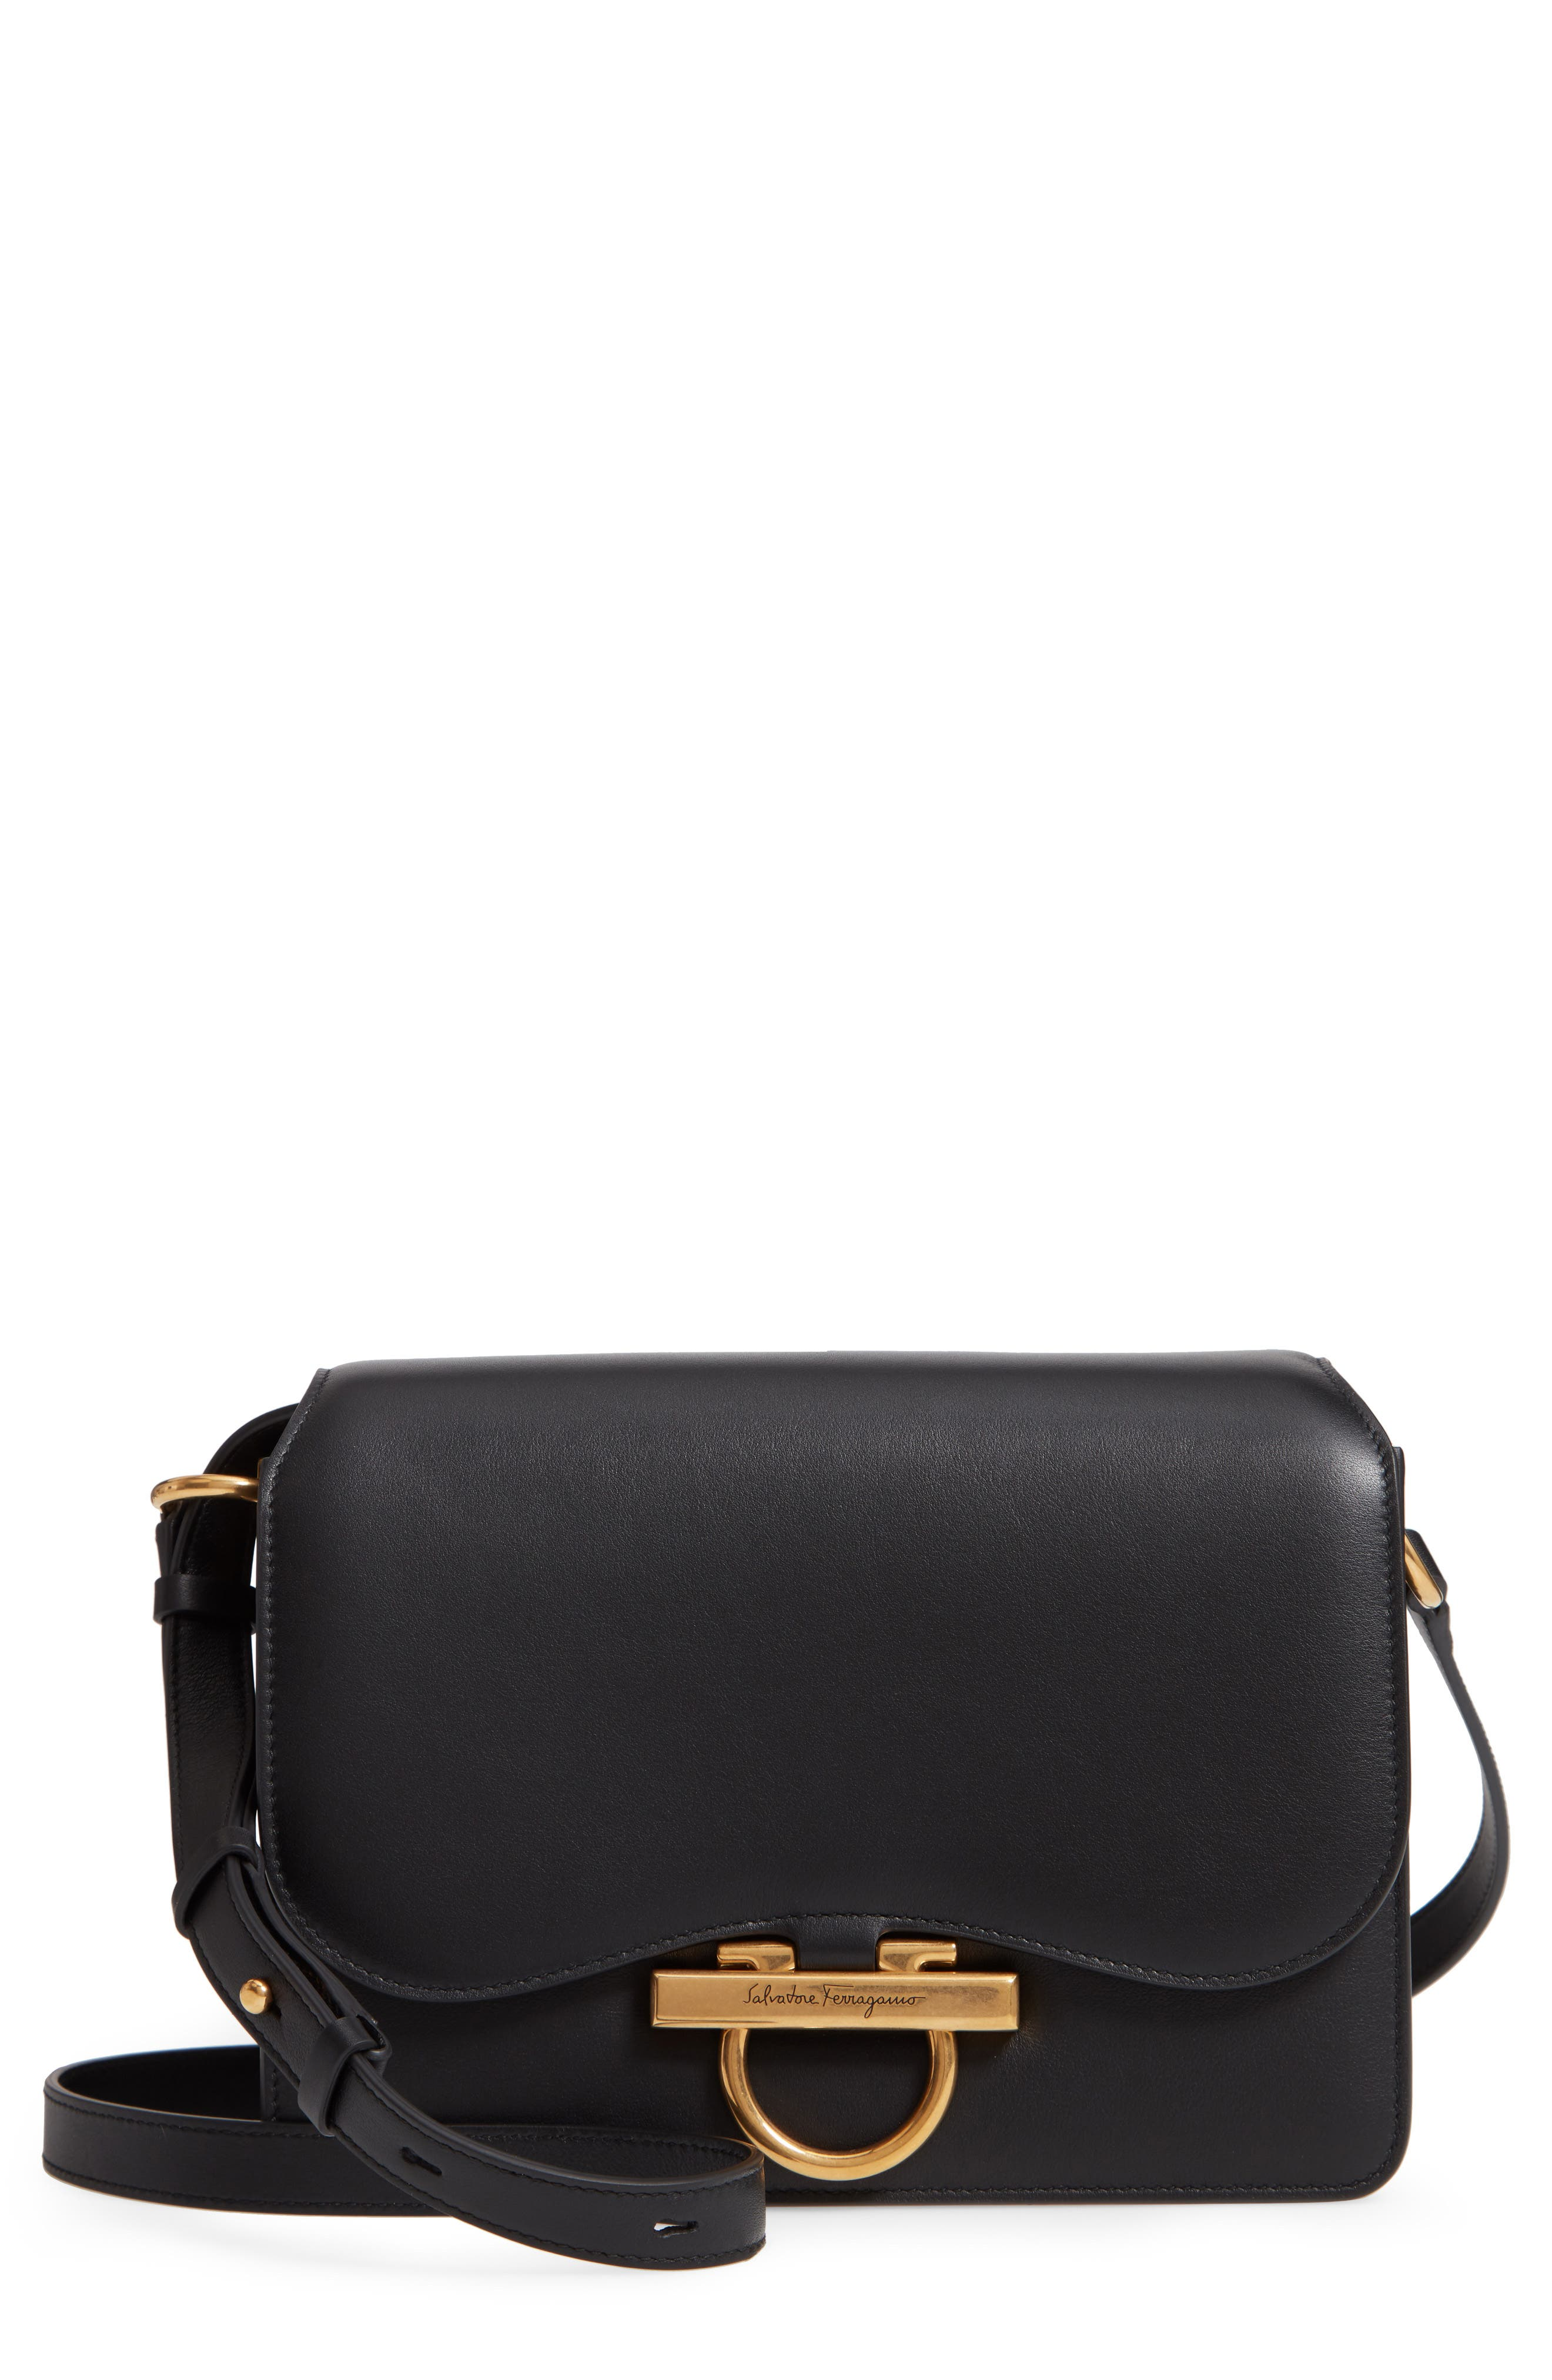 Medium Classic Flap Leather Shoulder Bag,                         Main,                         color, BLACK